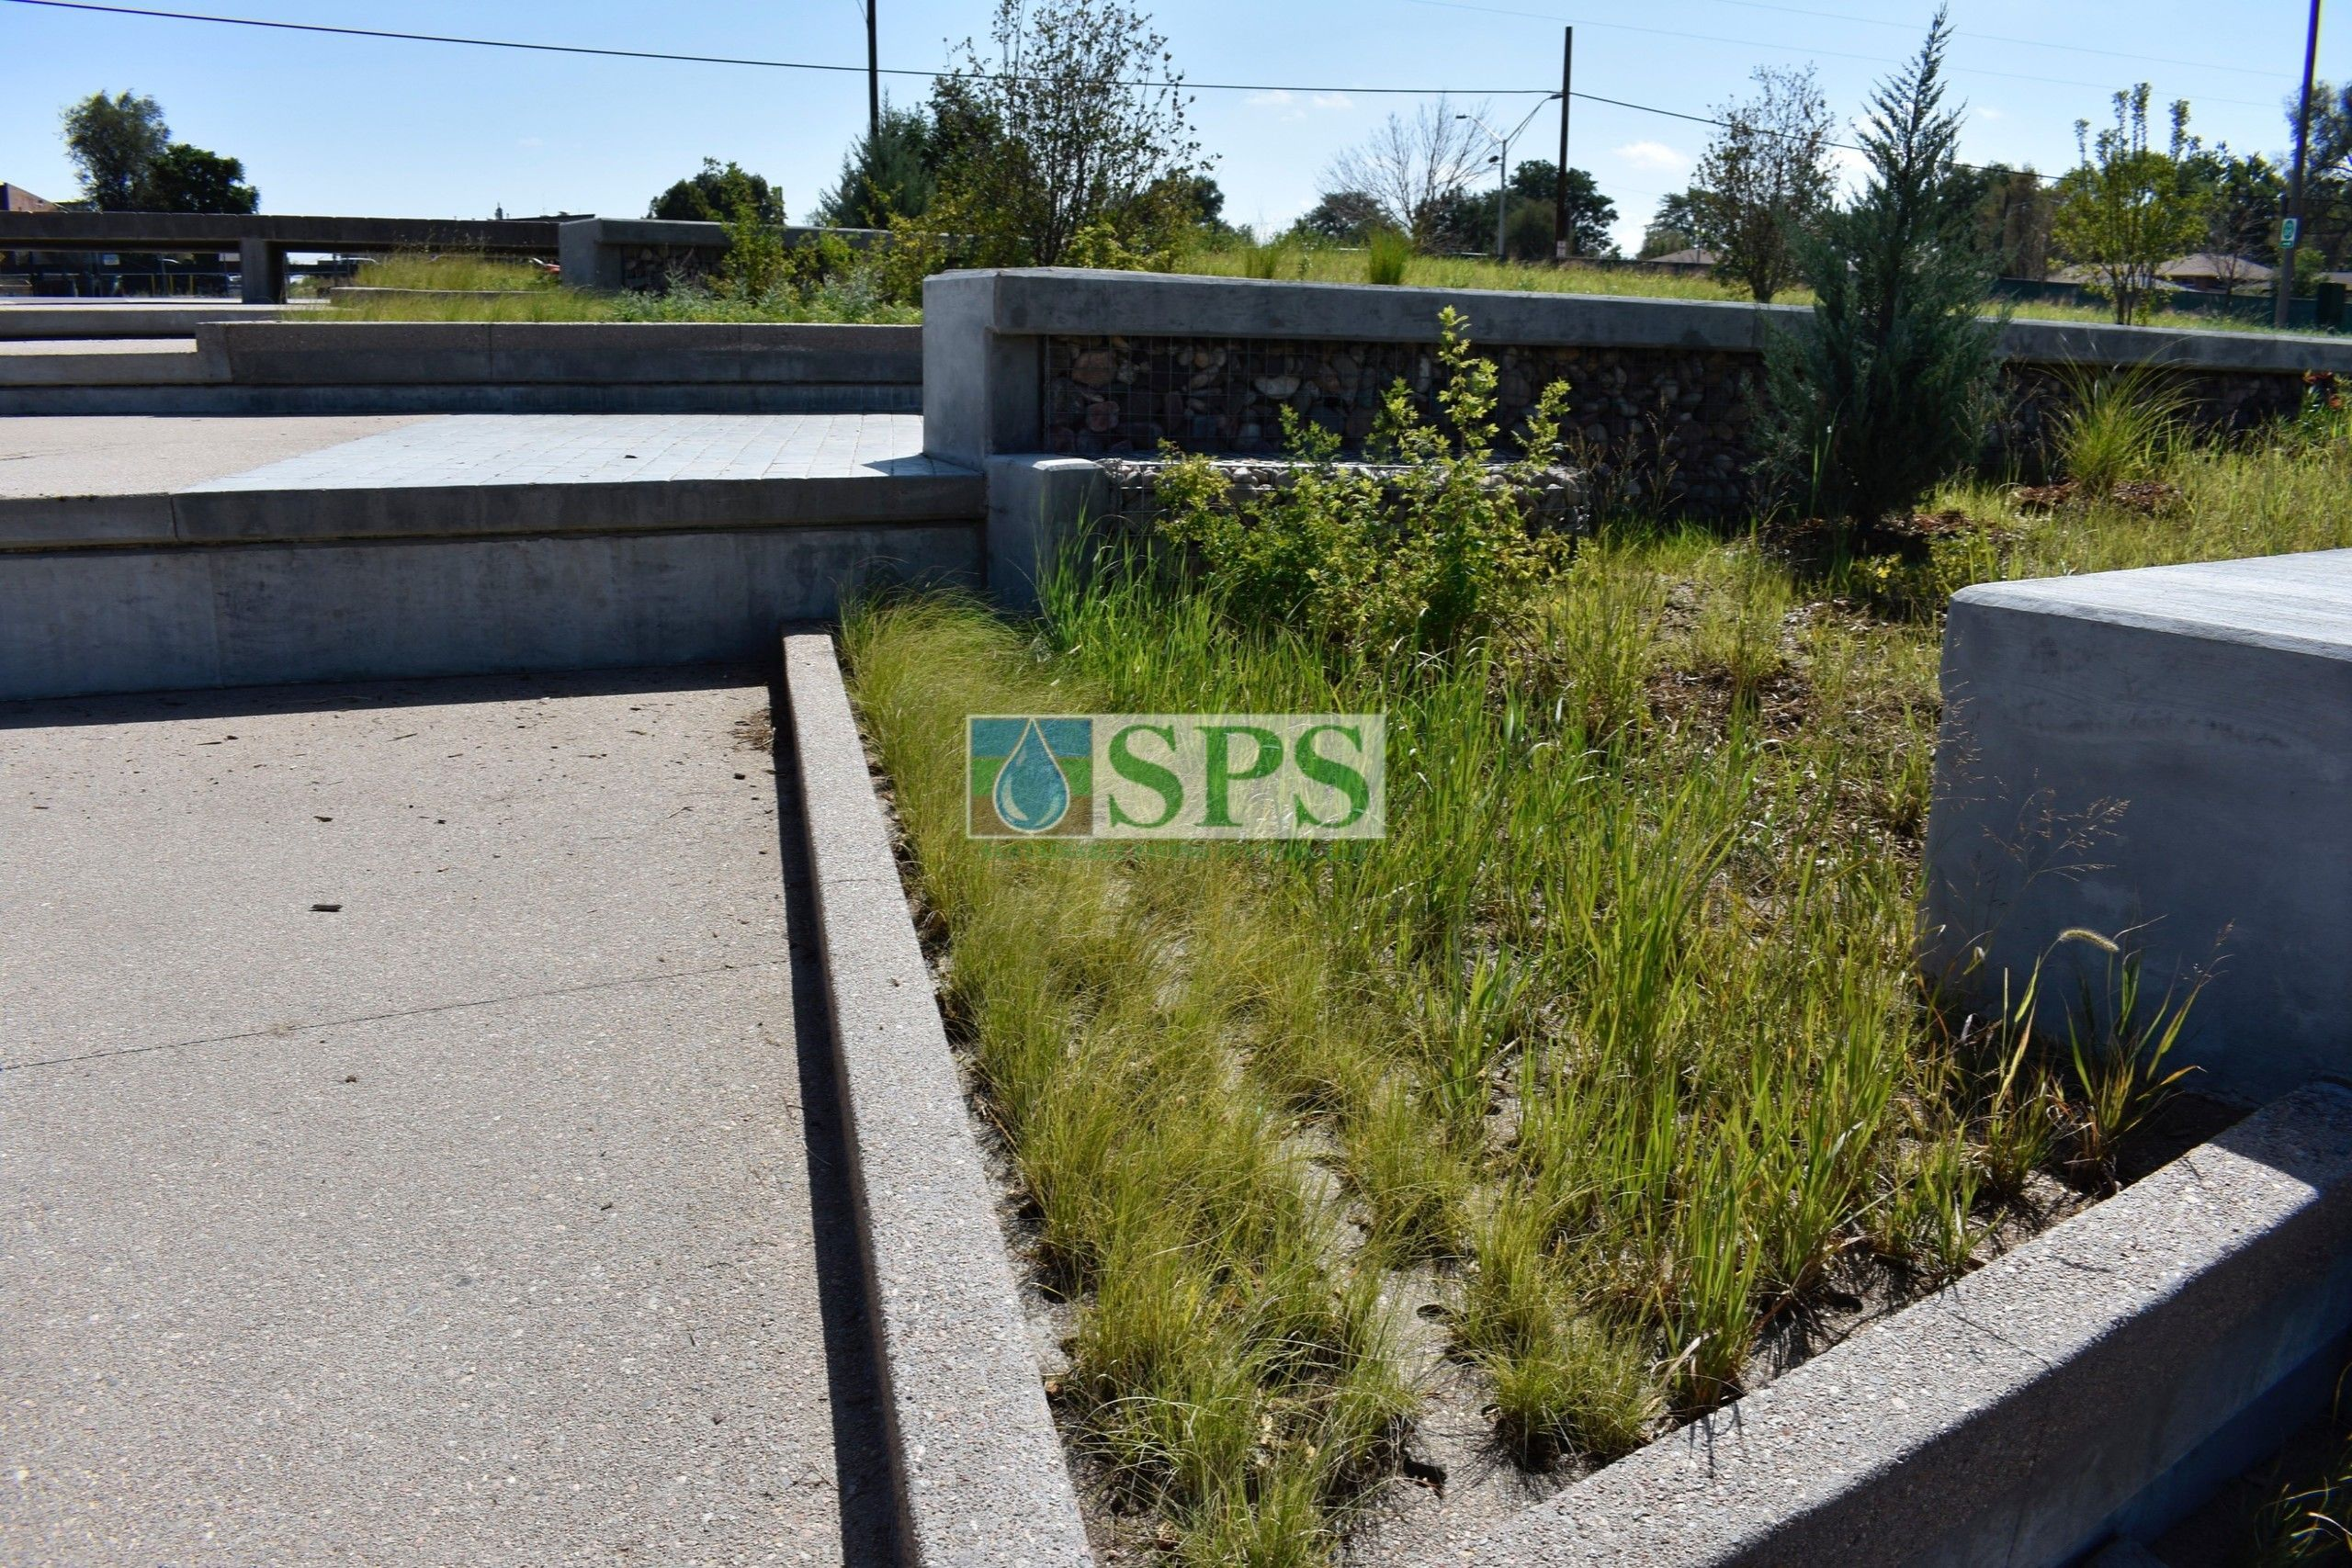 Close up of gabion tiered drop structure detention pond located in Denver, CO that was planted with varying grasses for greenspace and stormwater management using Sustainable Paving Systems Partial Grasscrete System installation of a pervious monolithic cast-in-place concrete.